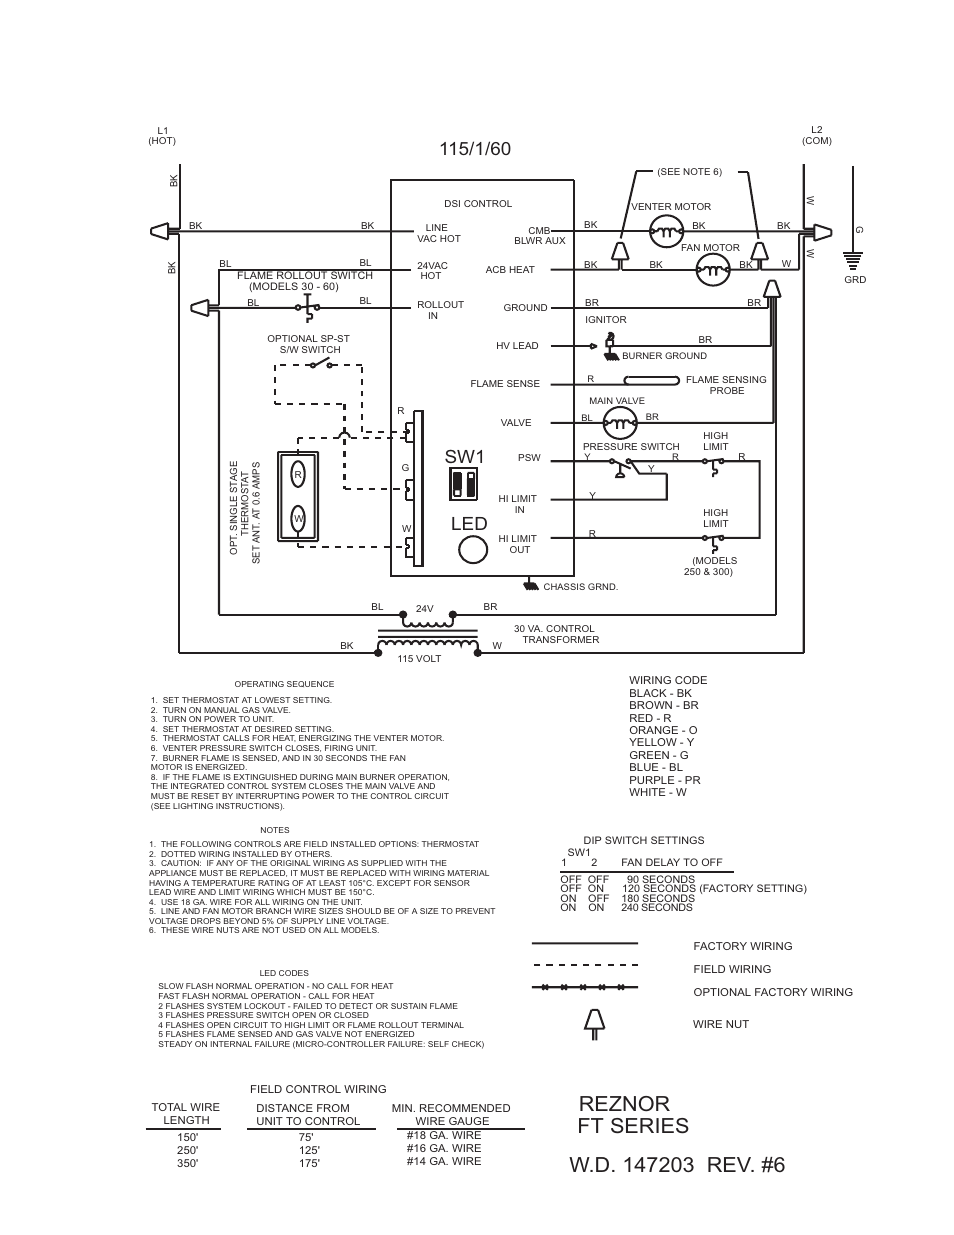 reznor ft unit installation manual page13 reznor furnace wiring diagram reznor wiring schematic oil pump olsen furnace wiring diagram at fashall.co